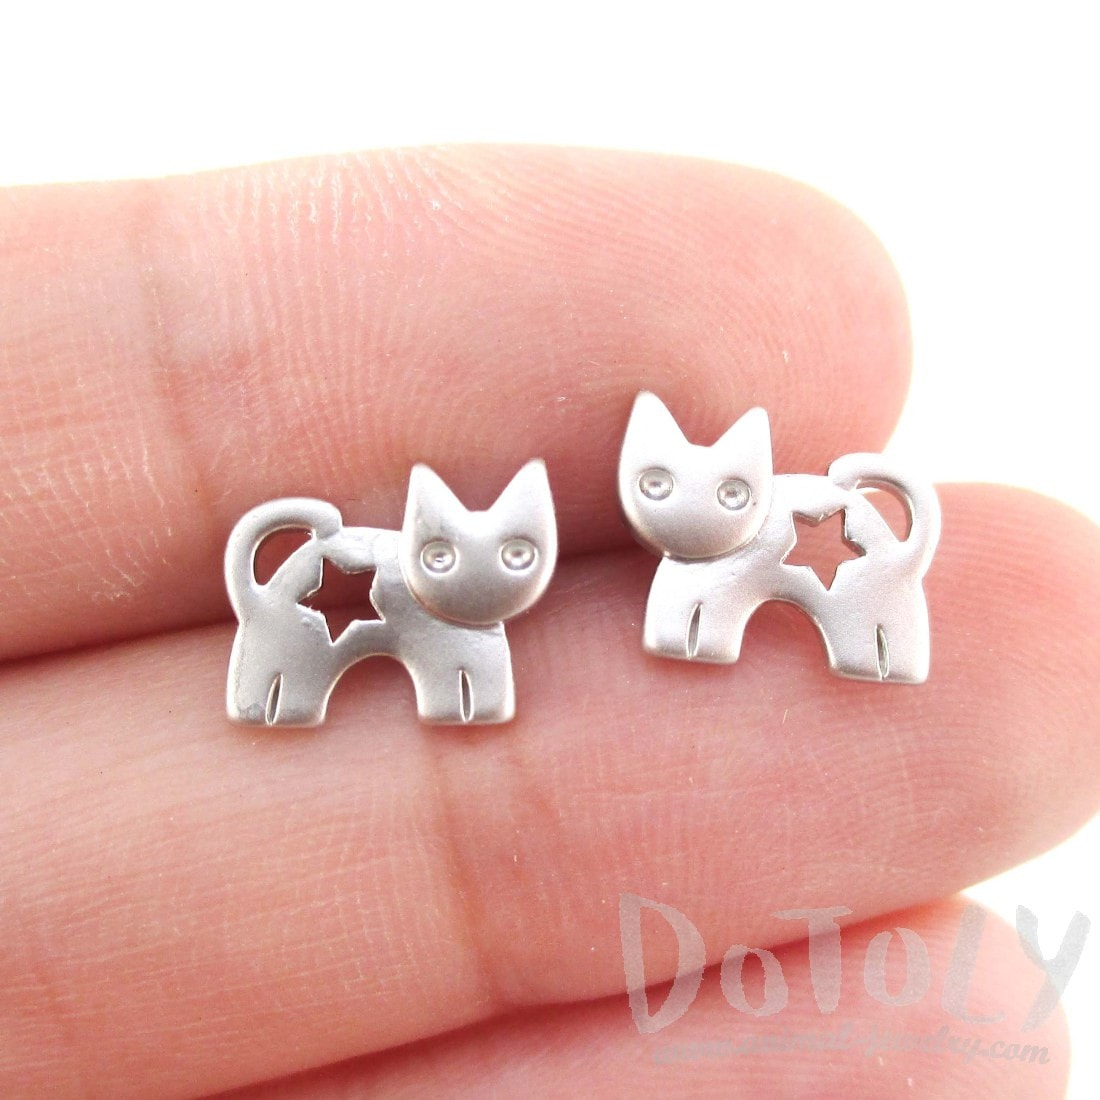 Kitty Cat with Star Cut Out Shaped Earrings in Silver